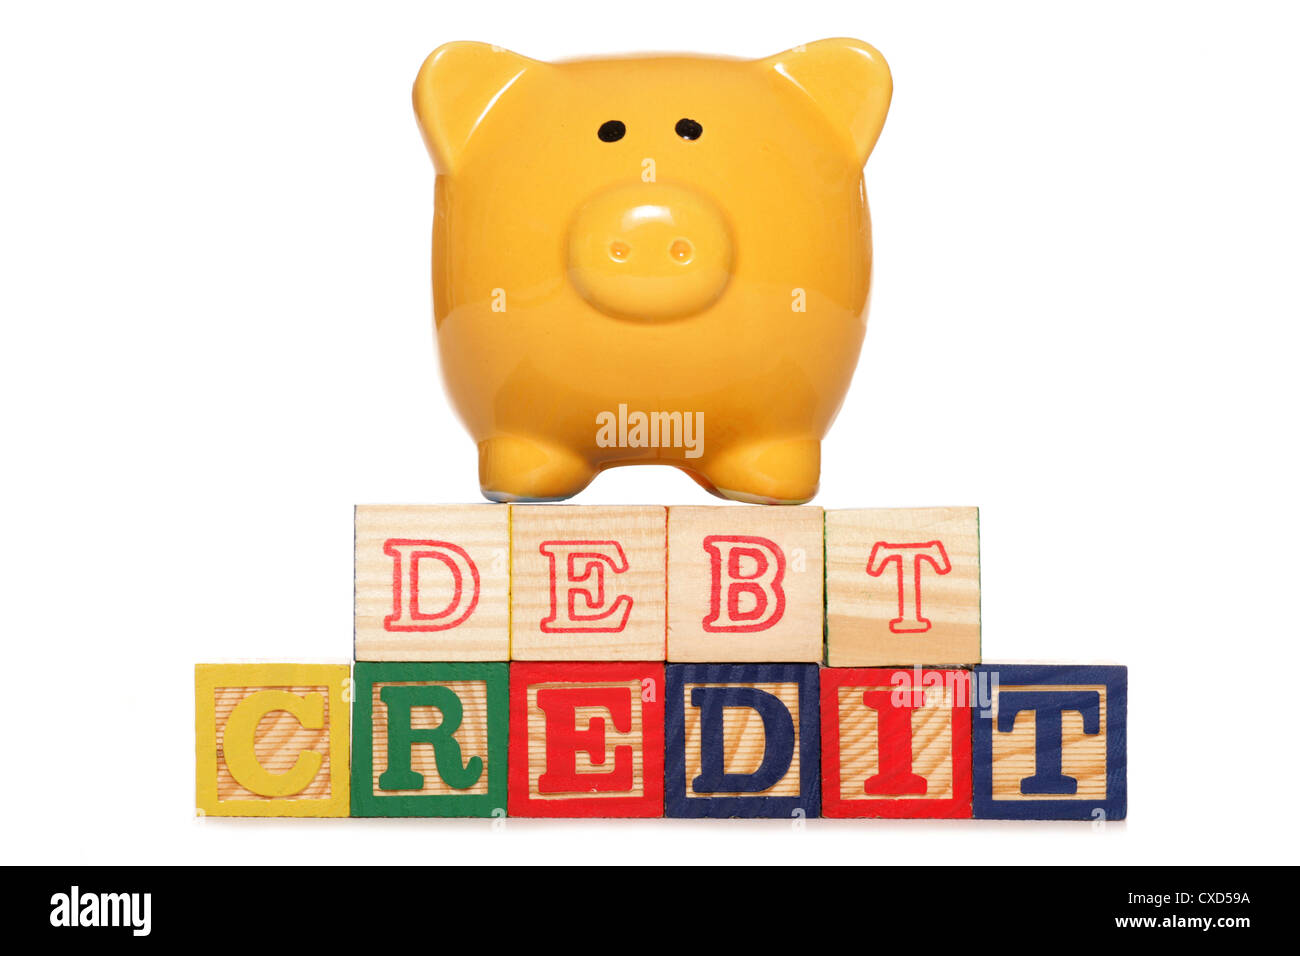 Piggy bank with debt and credit text studio cutout - Stock Image